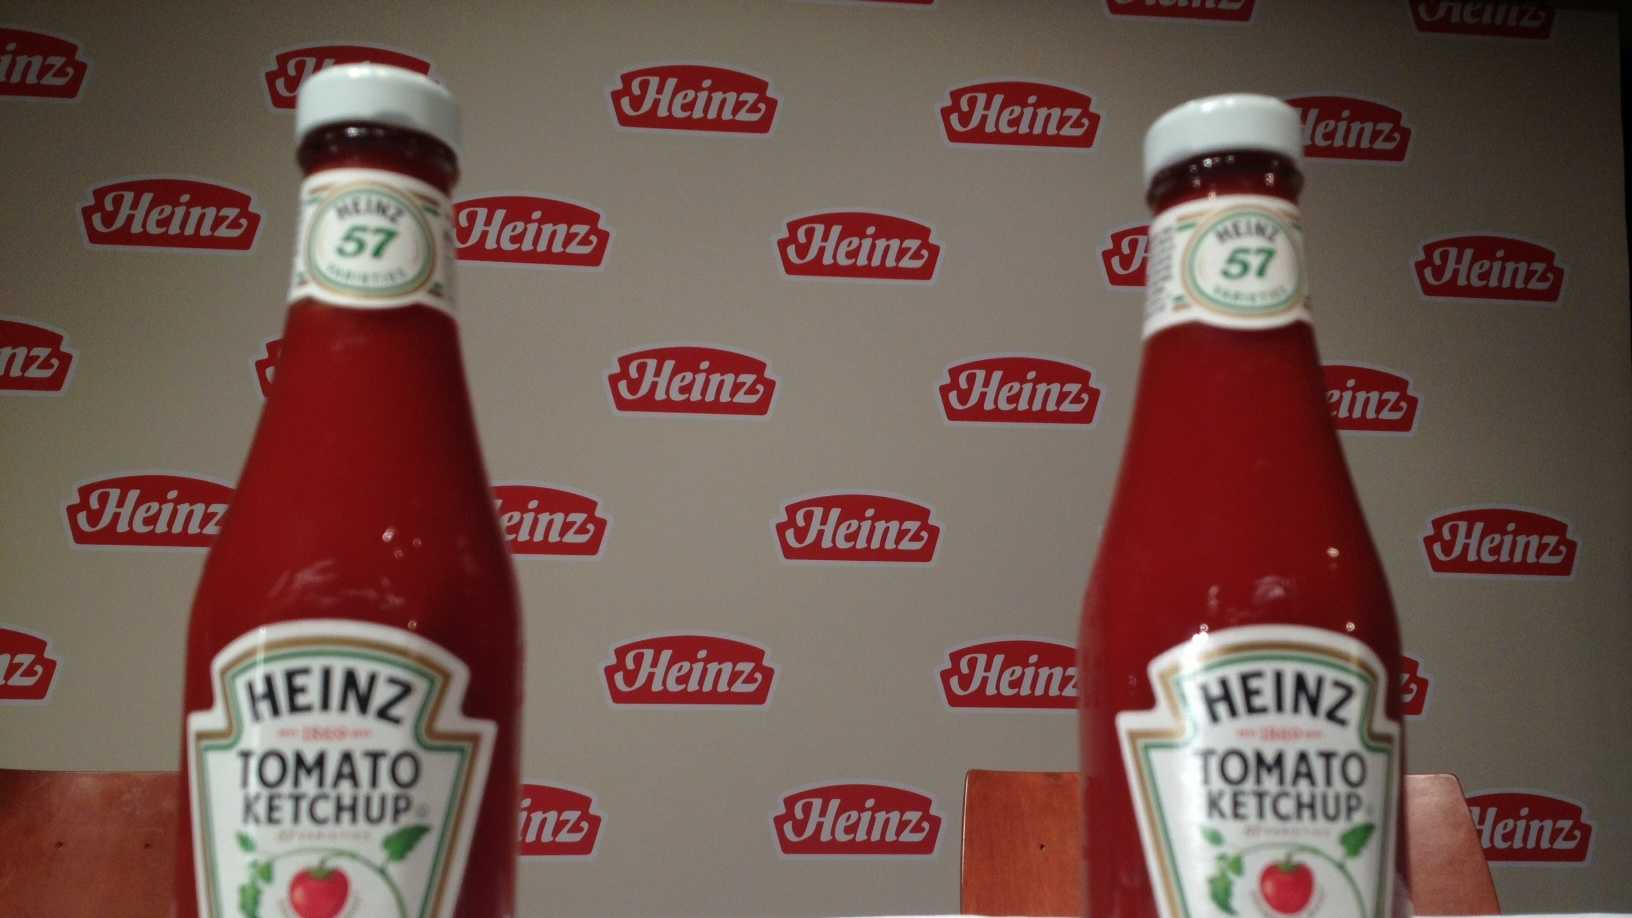 Heinz is known for worldwide for ketchup, but it produces many other food items too.